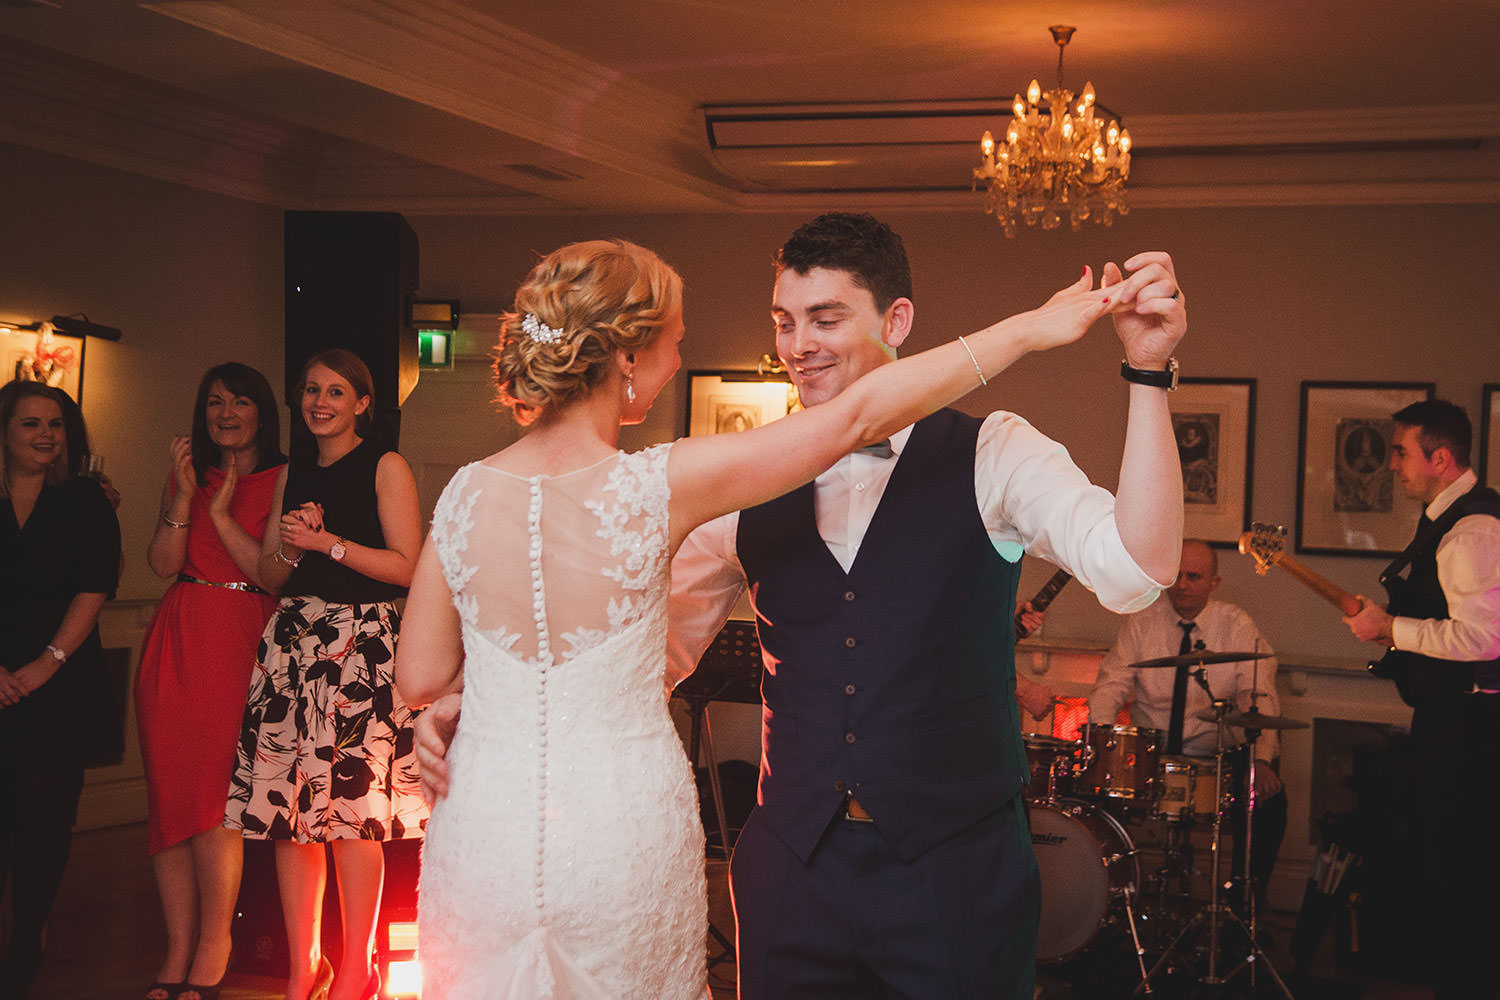 dunraven-arms-hotel-wedding-photography-169.jpg